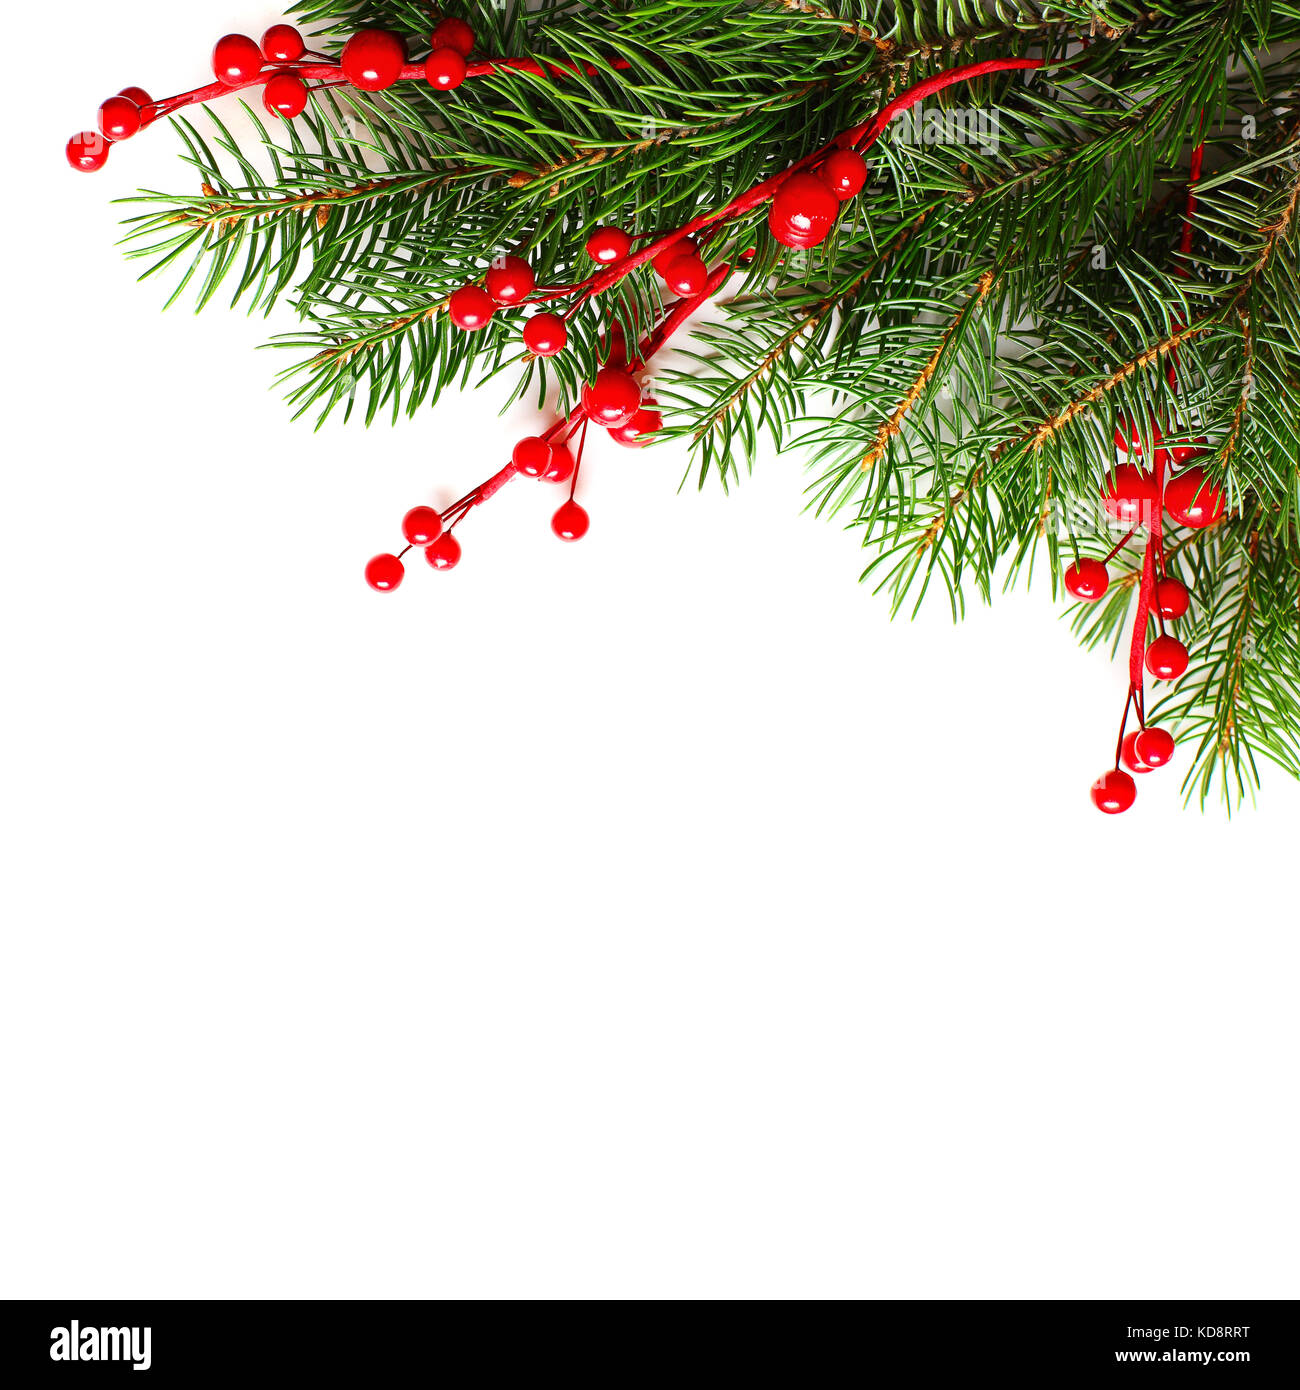 christmas background with xmas tree twig and red berries abstract christmas or new year border for xmas card on white background